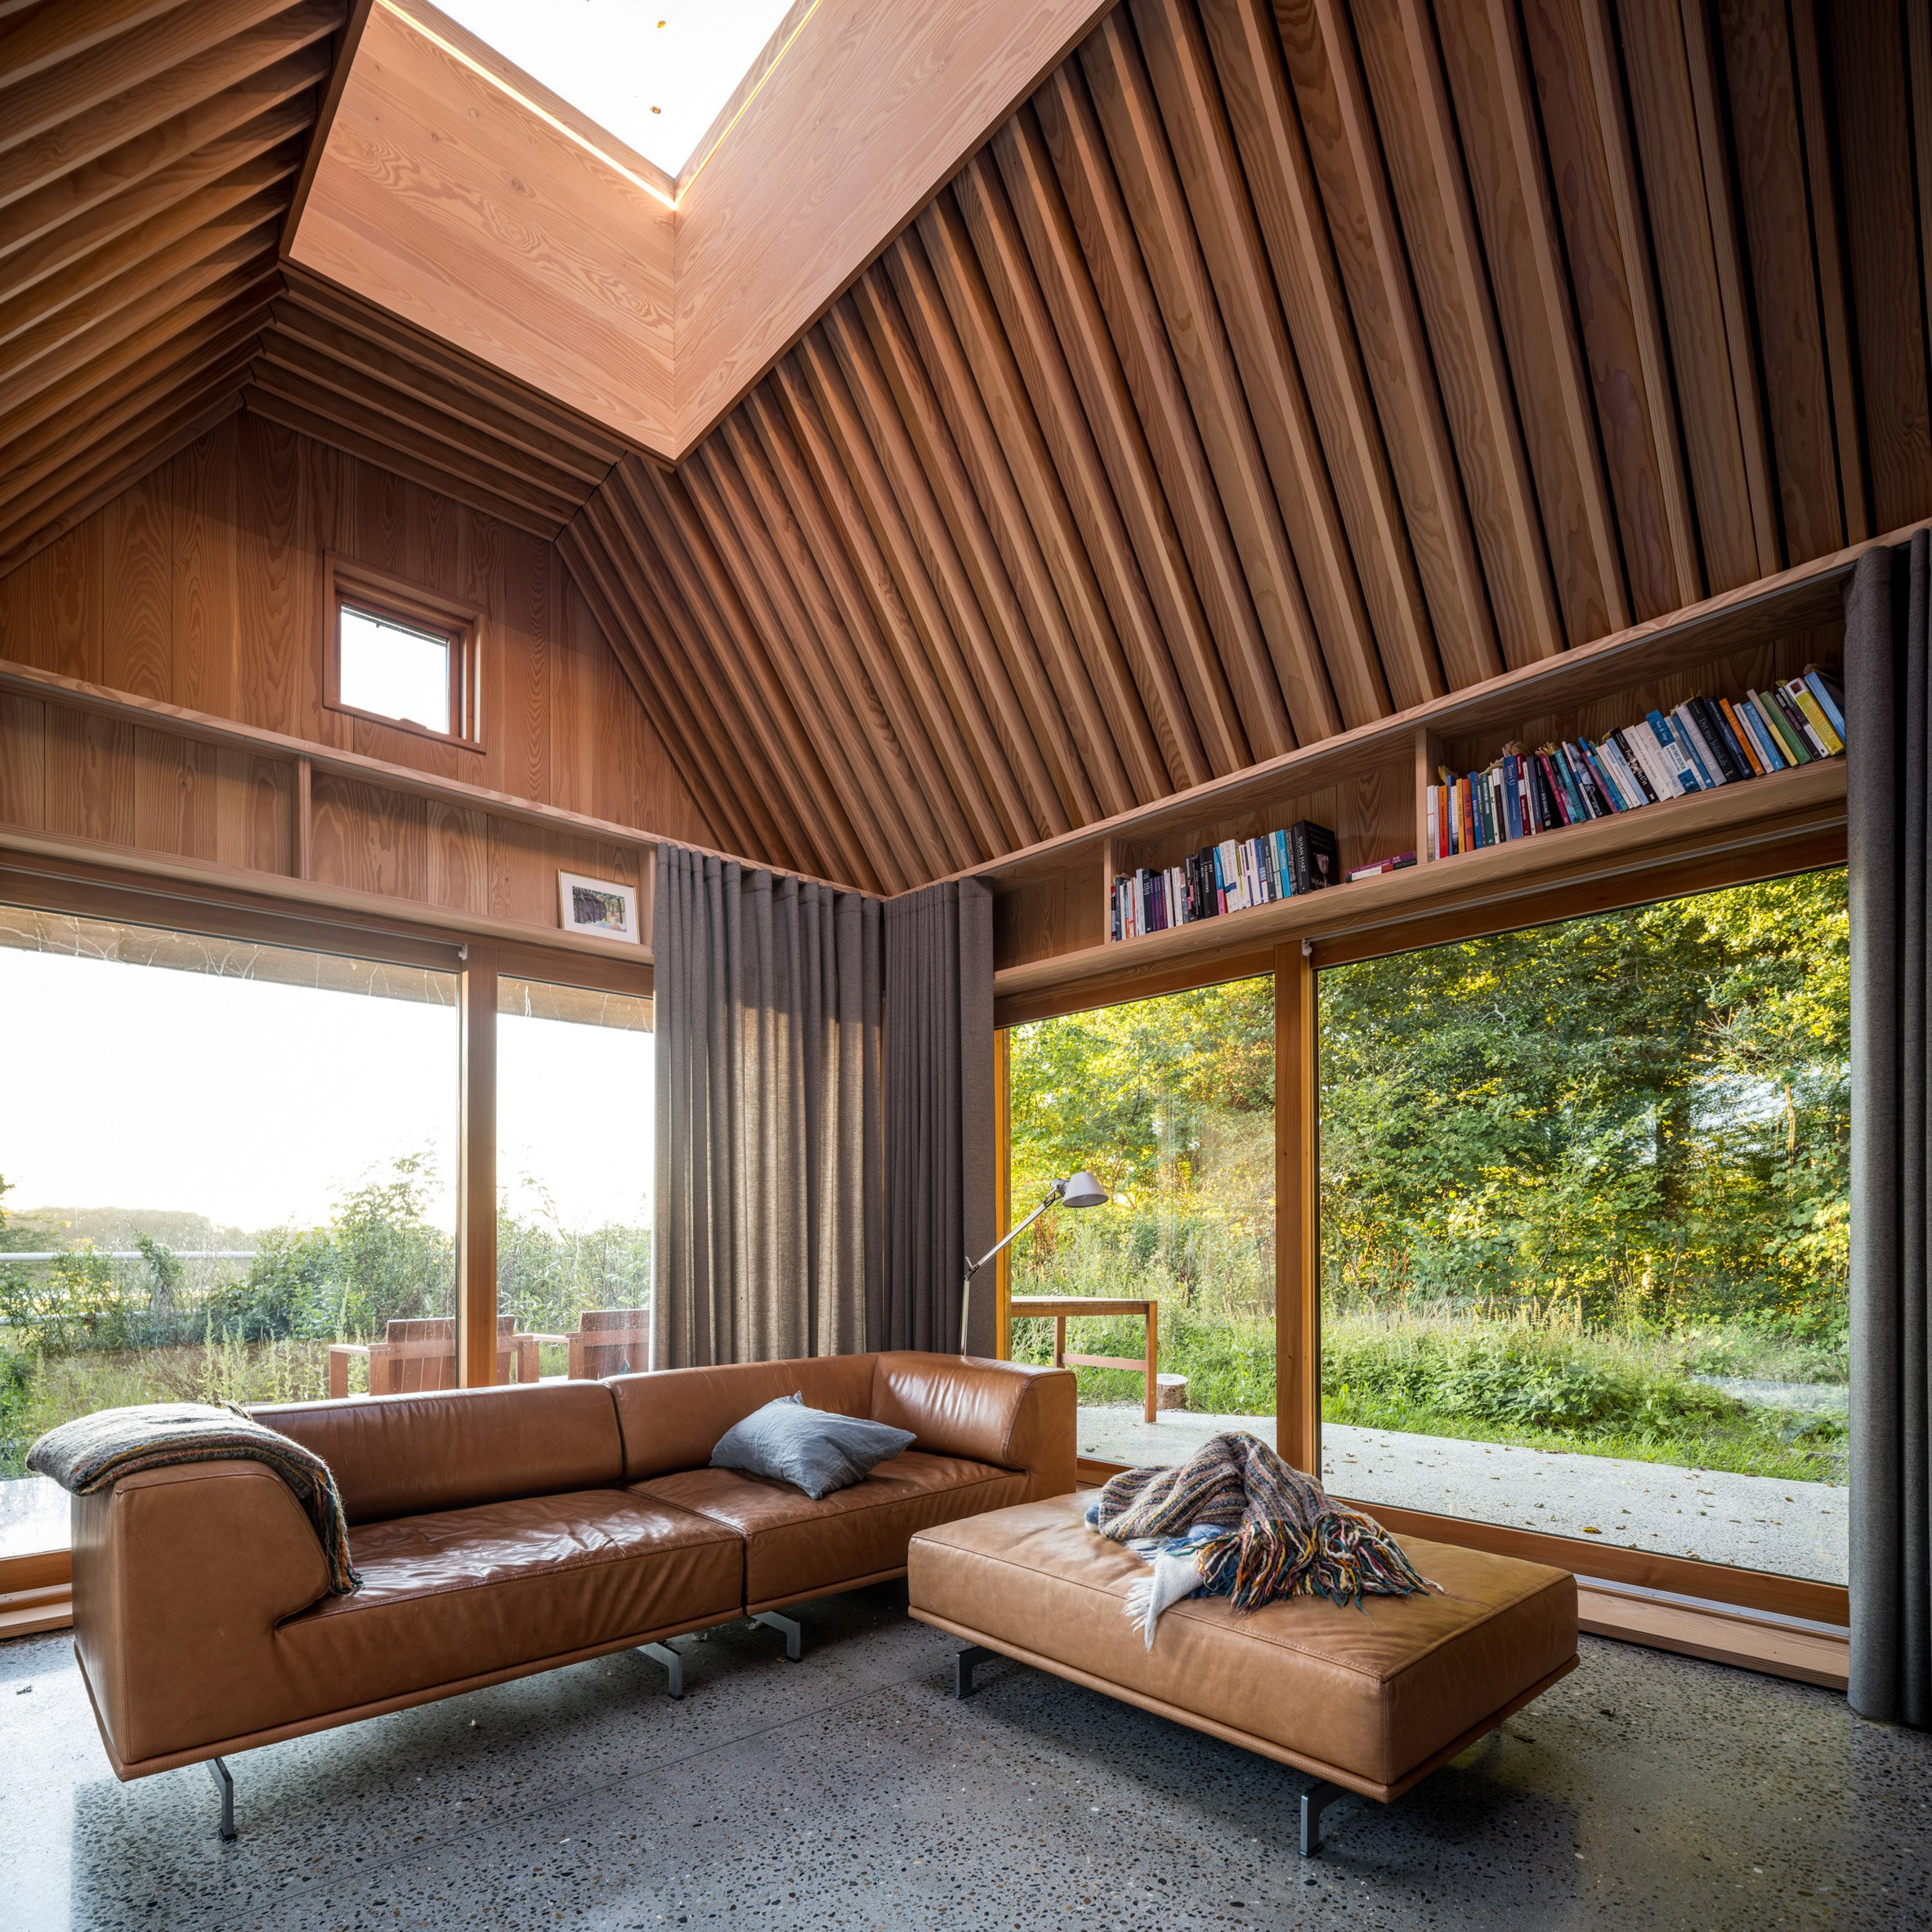 Sofa and in-built shelving in The Author's House by Sleth